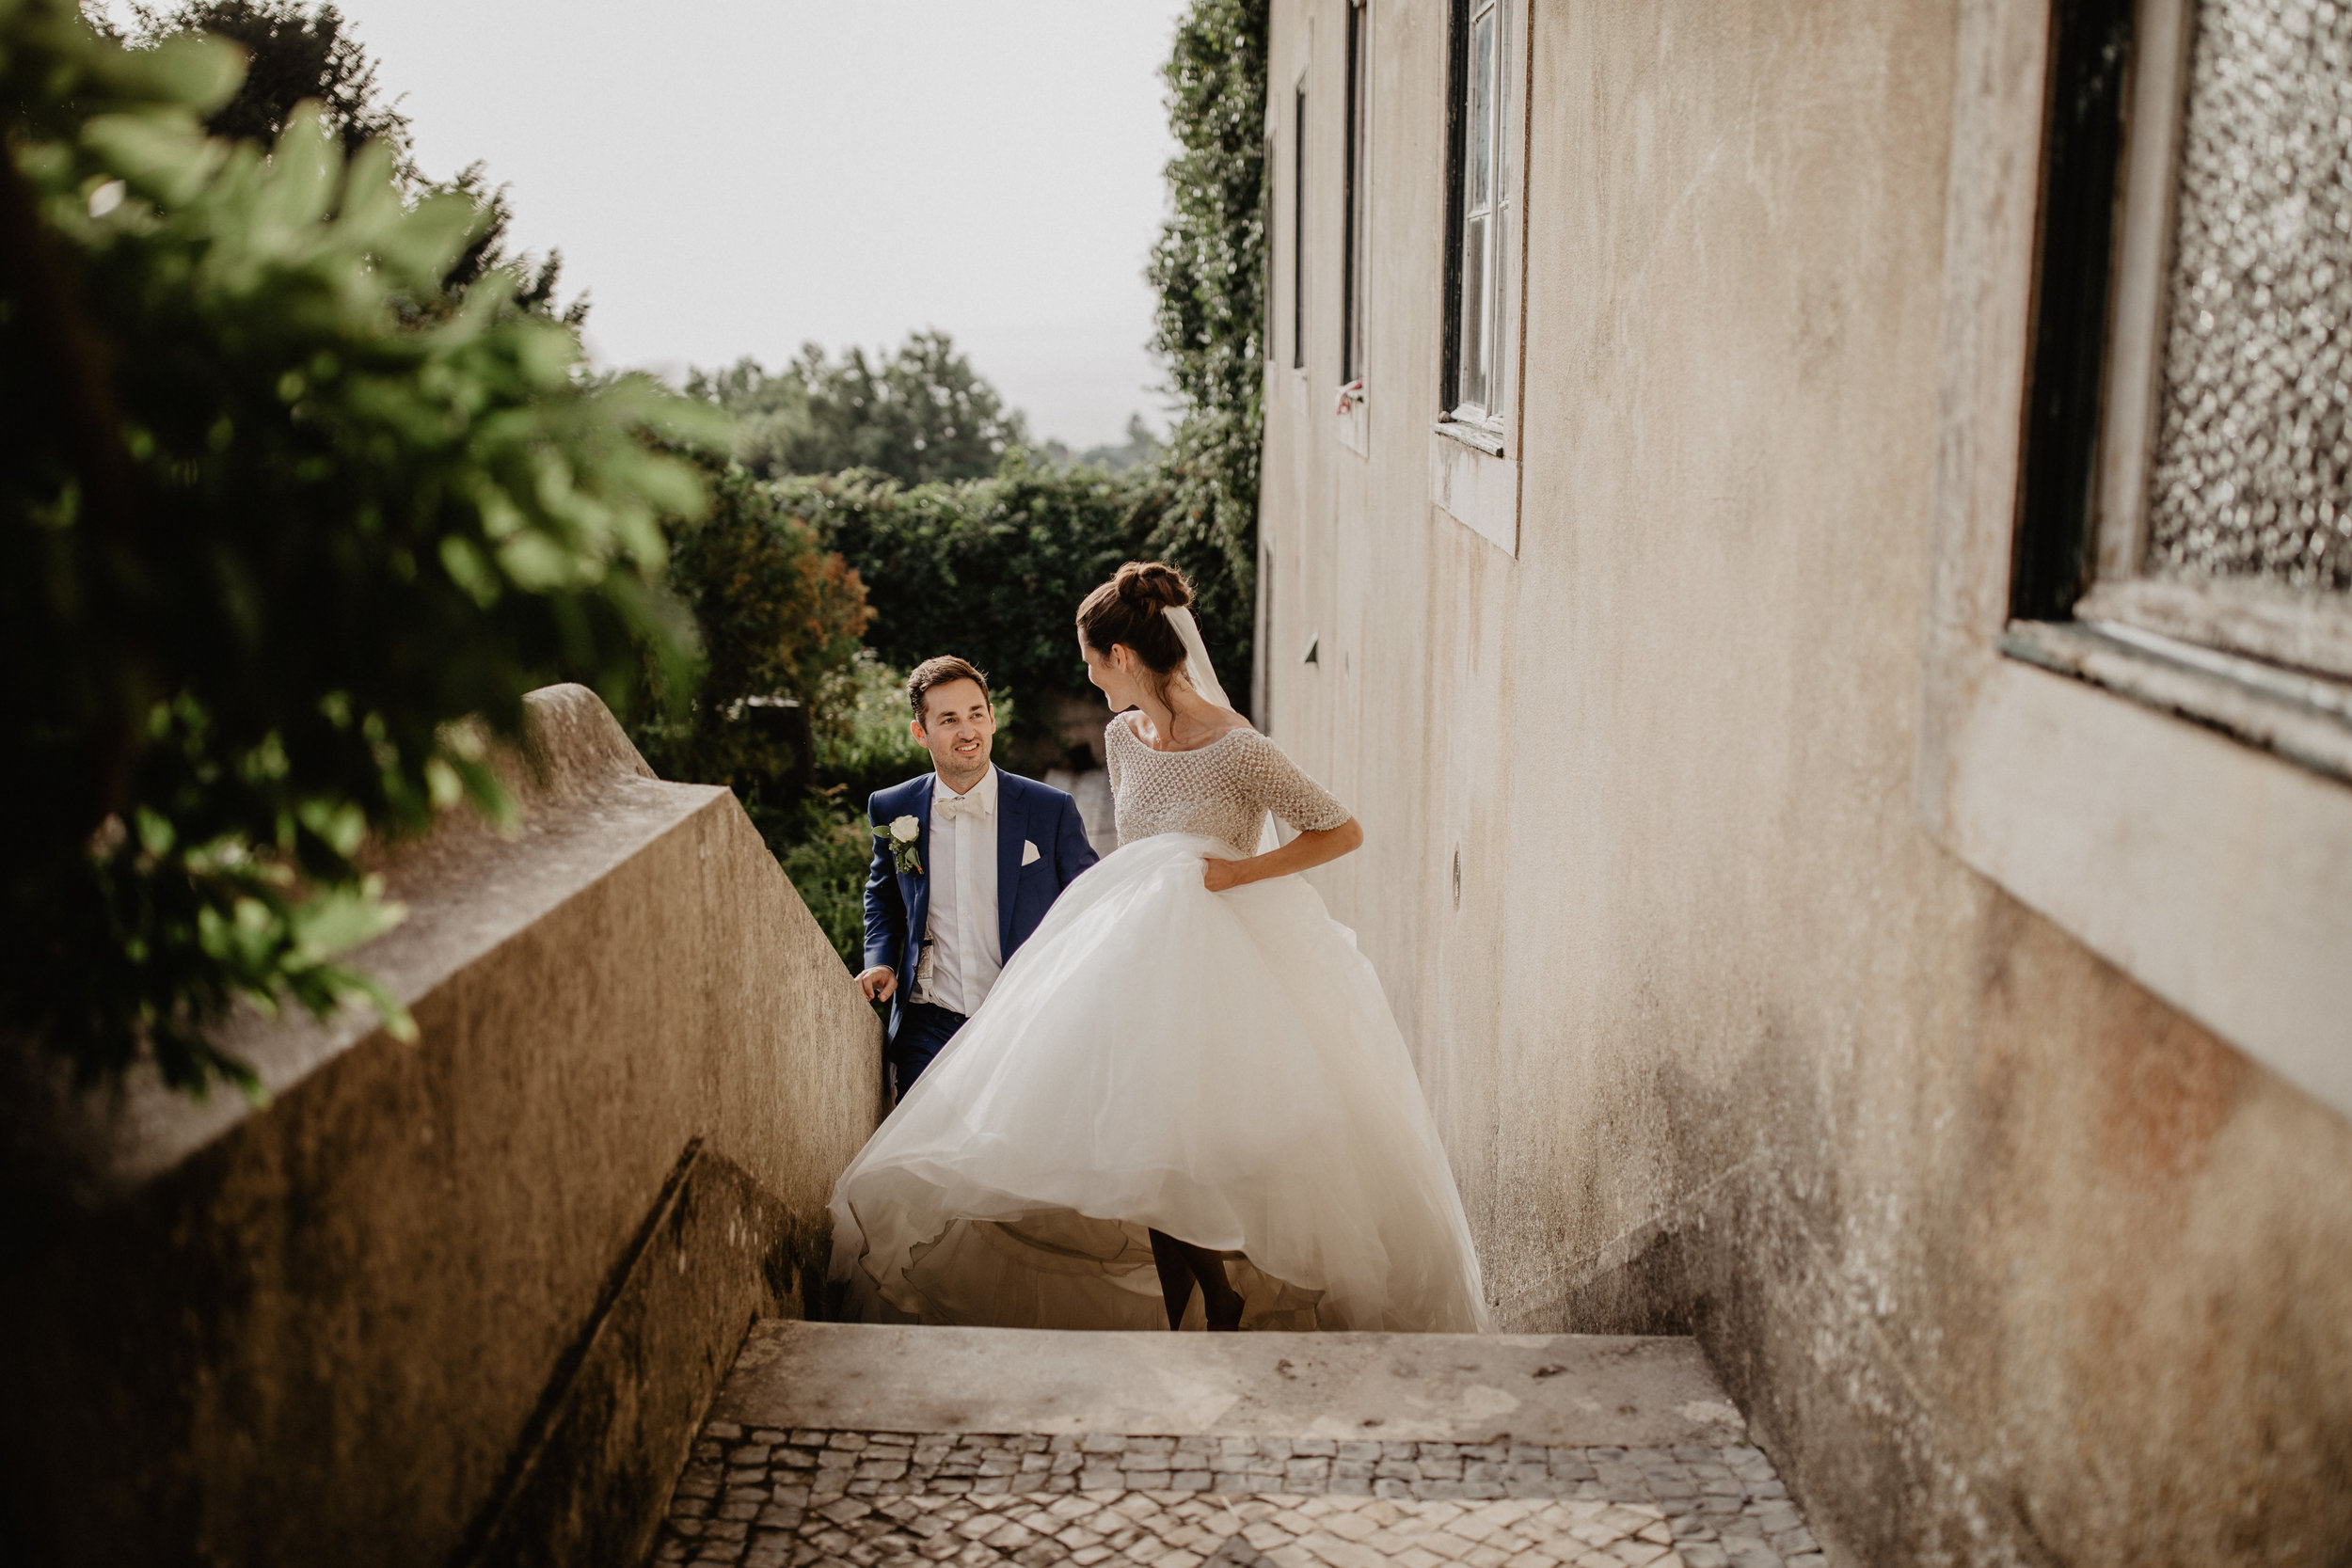 Lapela-photography-wedding-sintra-portugal-103.jpg